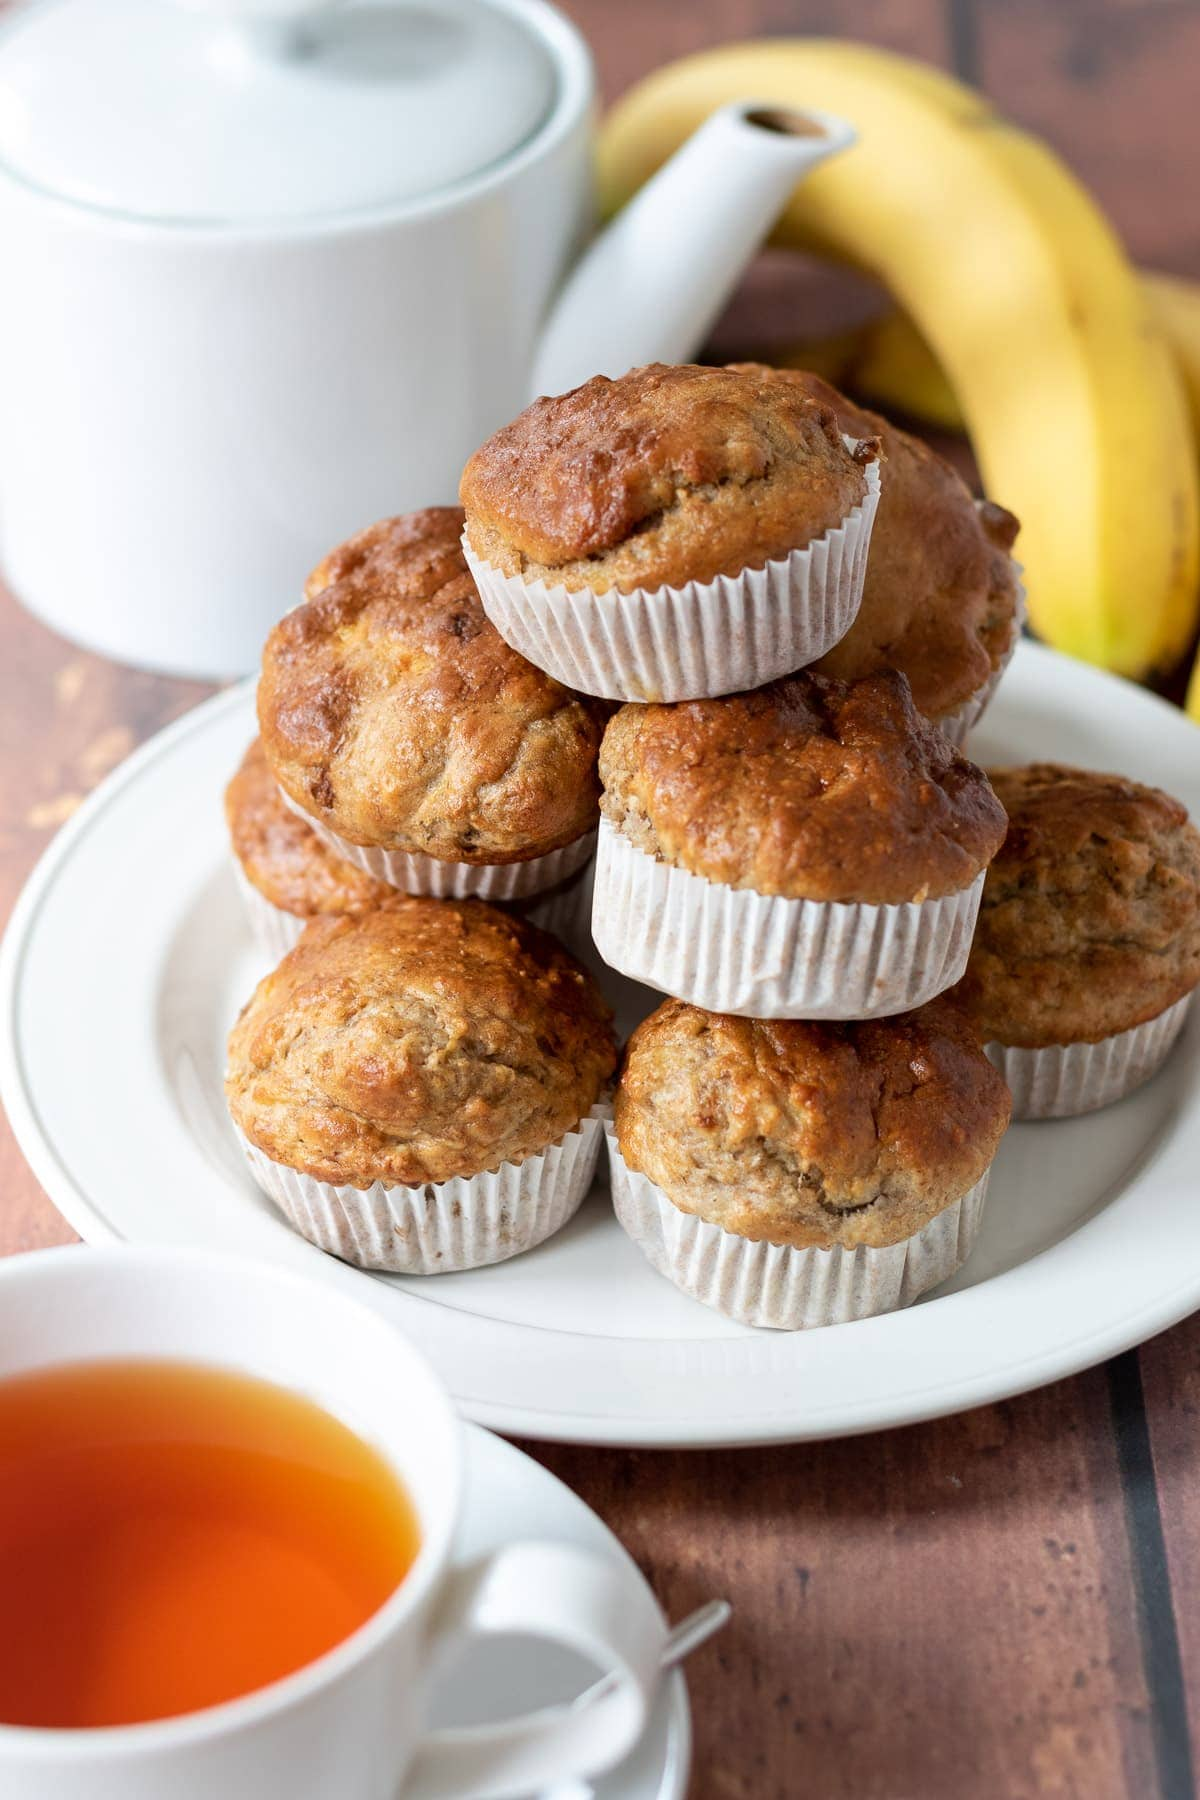 A stack of banana bread muffins on a plate. Cup of tea in the foreground and a teapot and banana in the background.